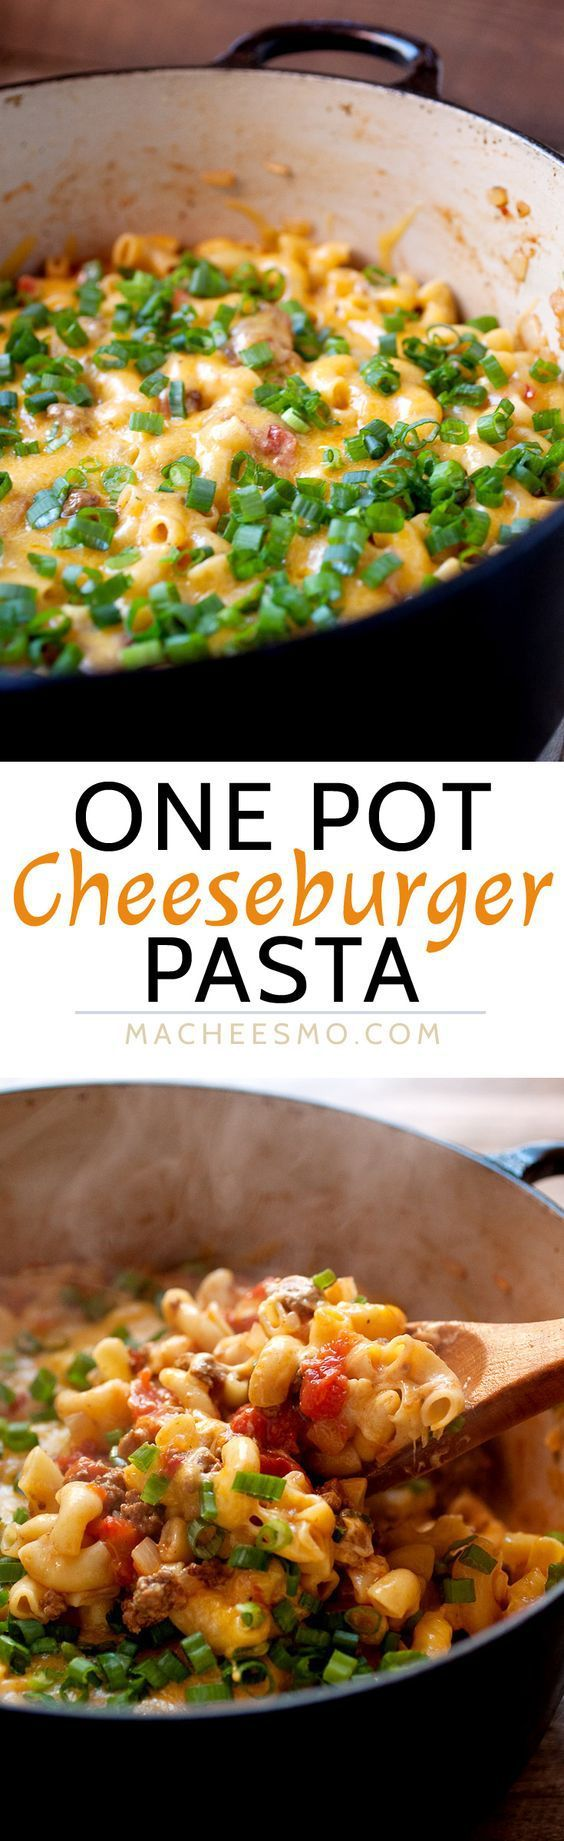 One Pot Cheeseburger Pasta {with a cheese lid!} Recipe | Macheesmo - The Best Easy One Pot Pasta Family Dinner Recipes #onepotpasta #onepotmeals #pastarecipes #onepotpastarecipes #onepotrecipes #mealprep #pasta #simplefamilymeals #simplefamilyrecipes #simplerecipes